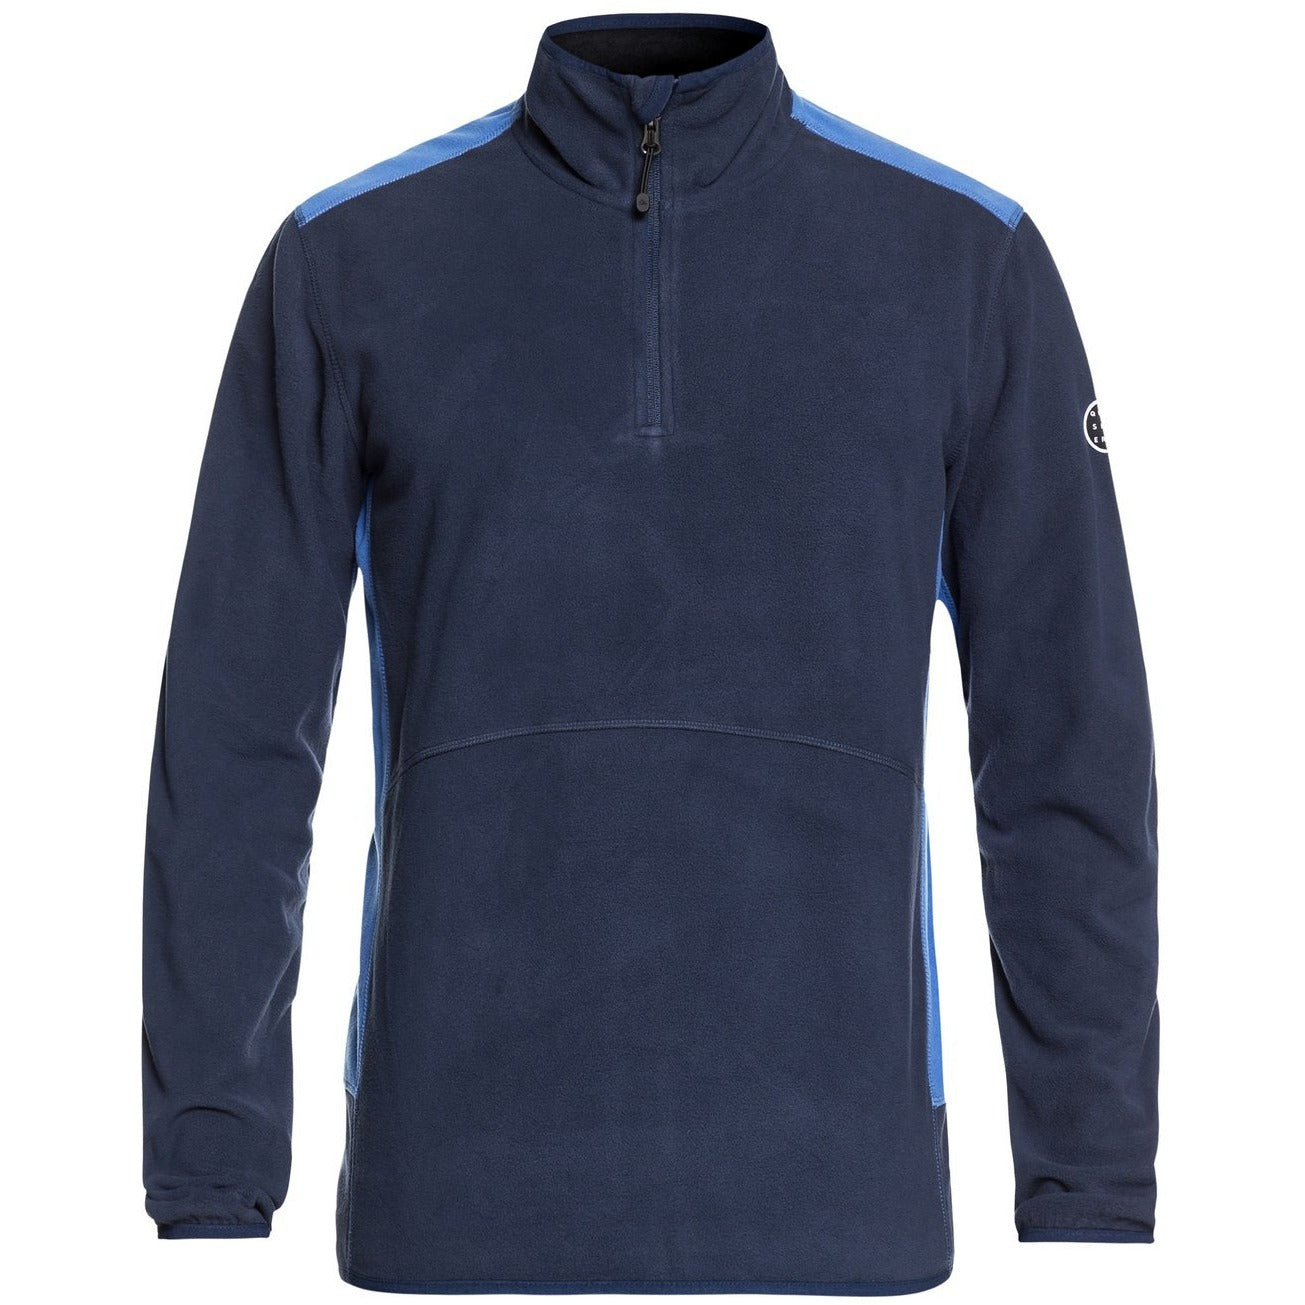 Quiksilver Aker Technical Half Zip Fleece - 88 Gear